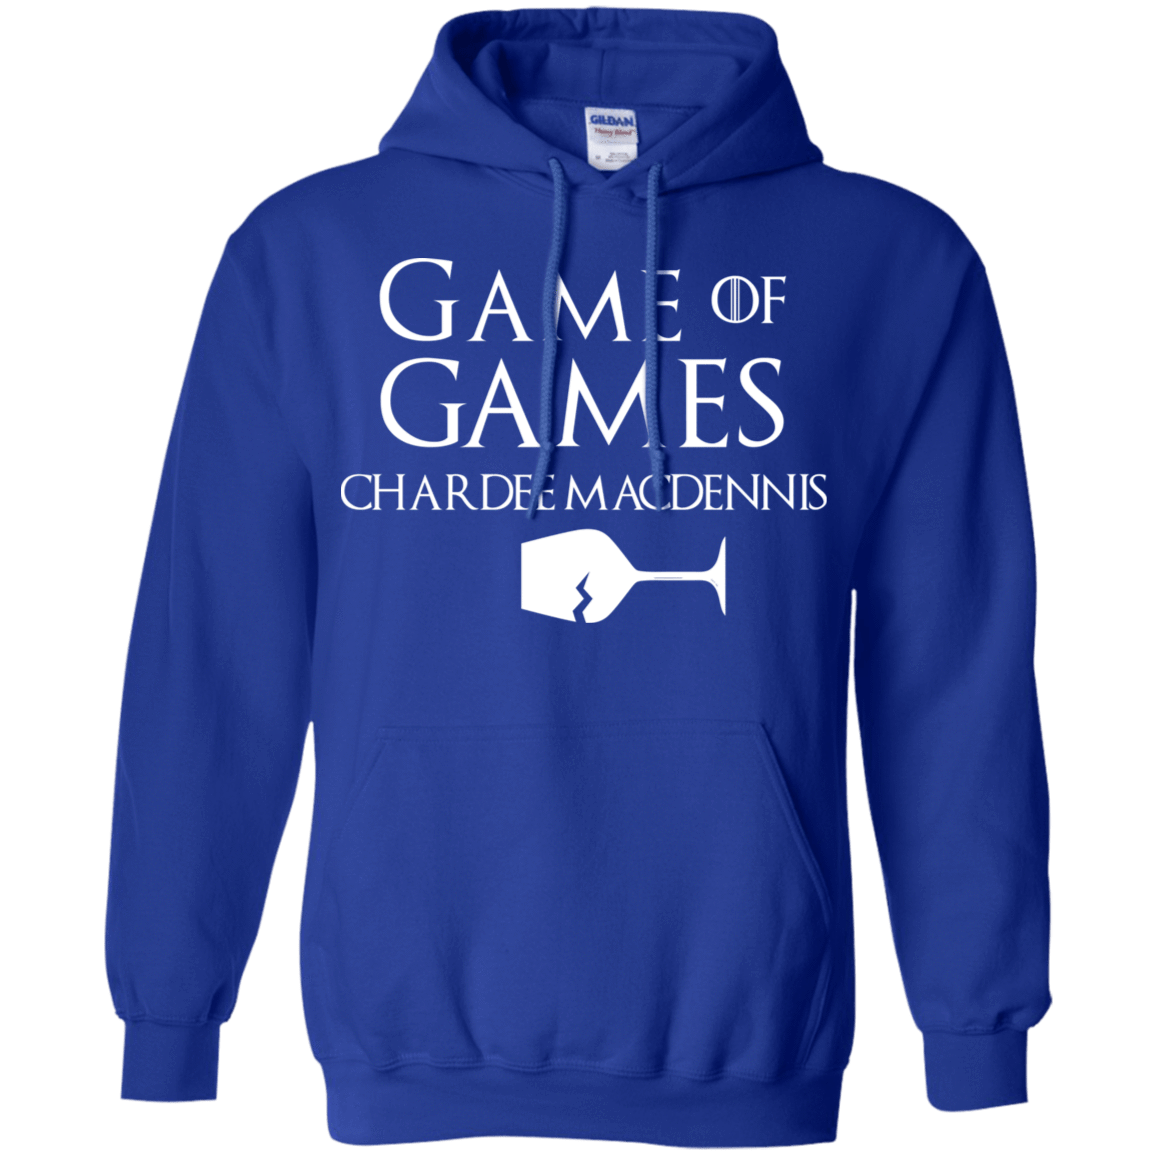 Game Of Games Chardee Macdennis 541-4765-72957244-23175 - Tee Ript